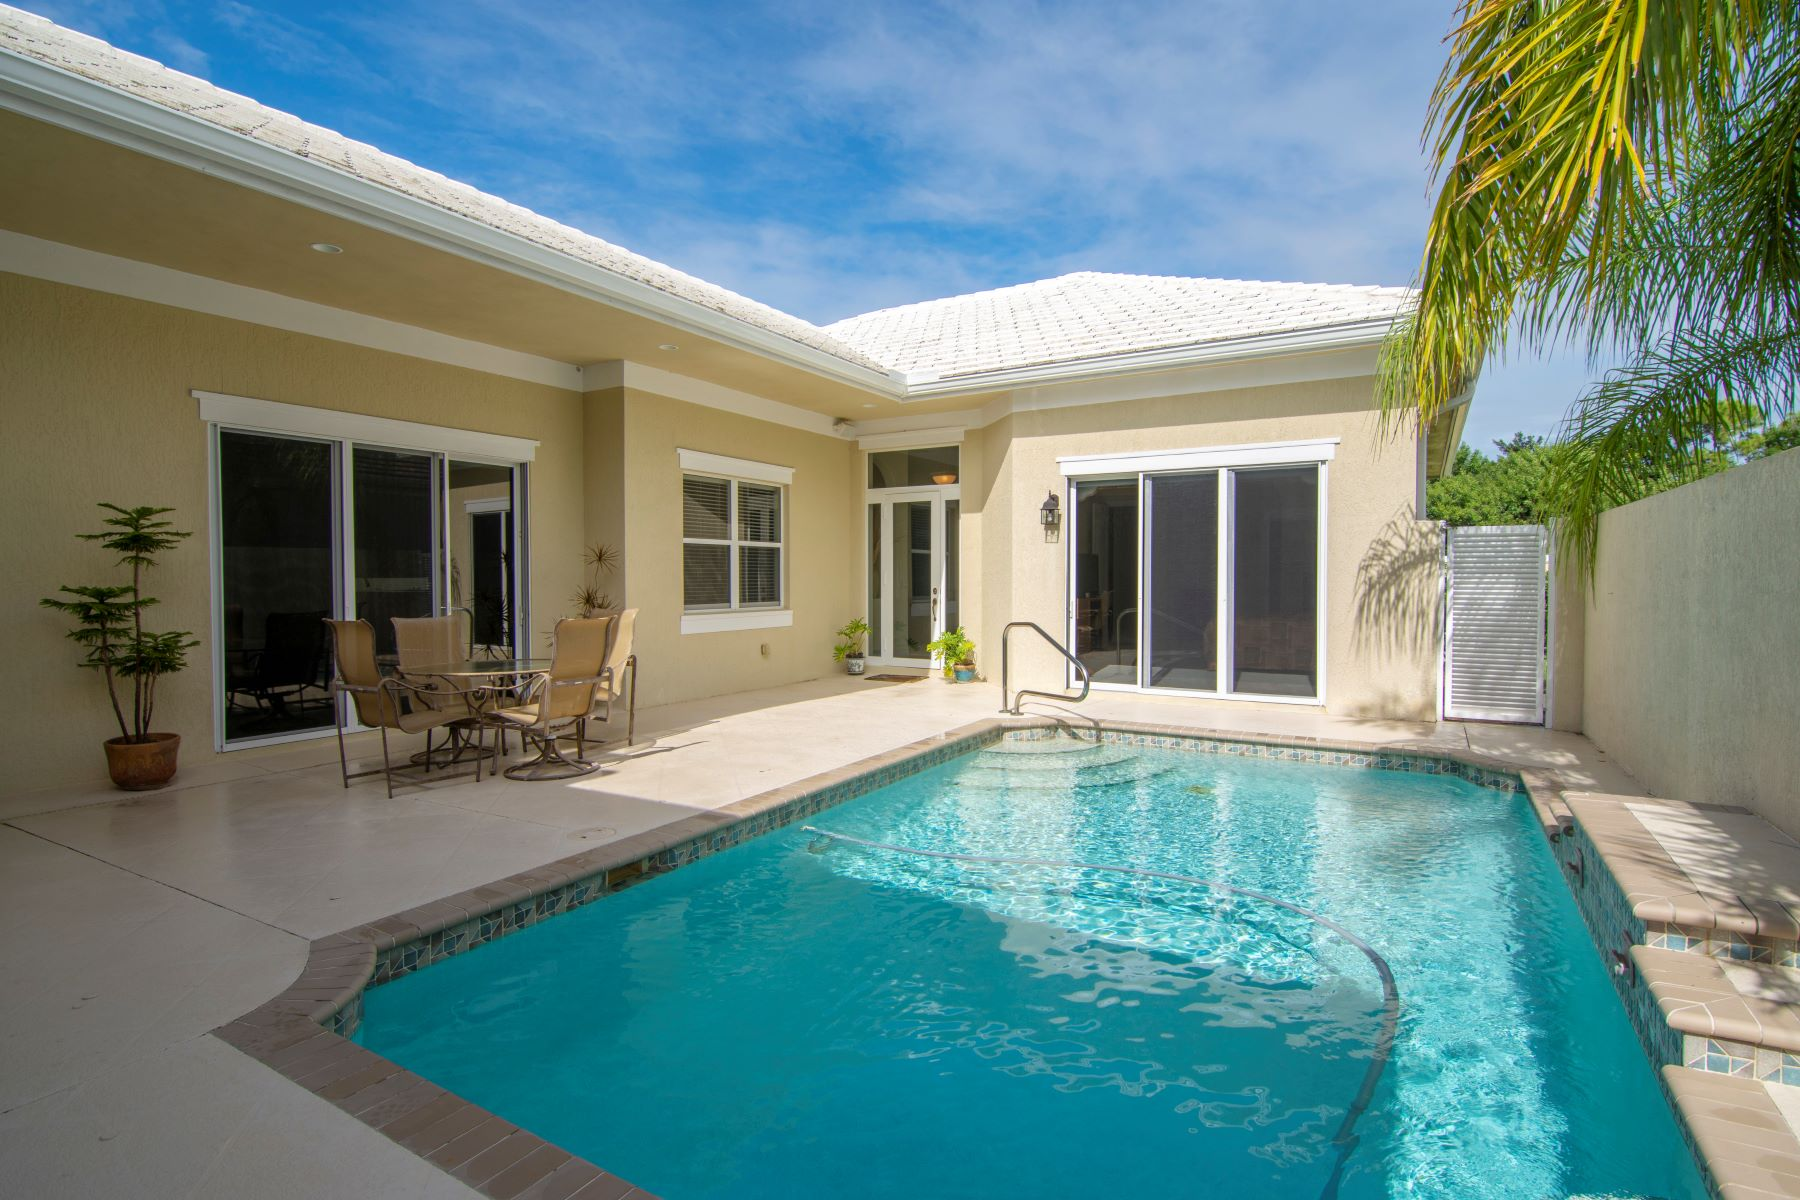 Property for Sale at Four Bedroom Courtyard Pool Home 1025 Riverwind Circle Vero Beach, Florida 32967 United States